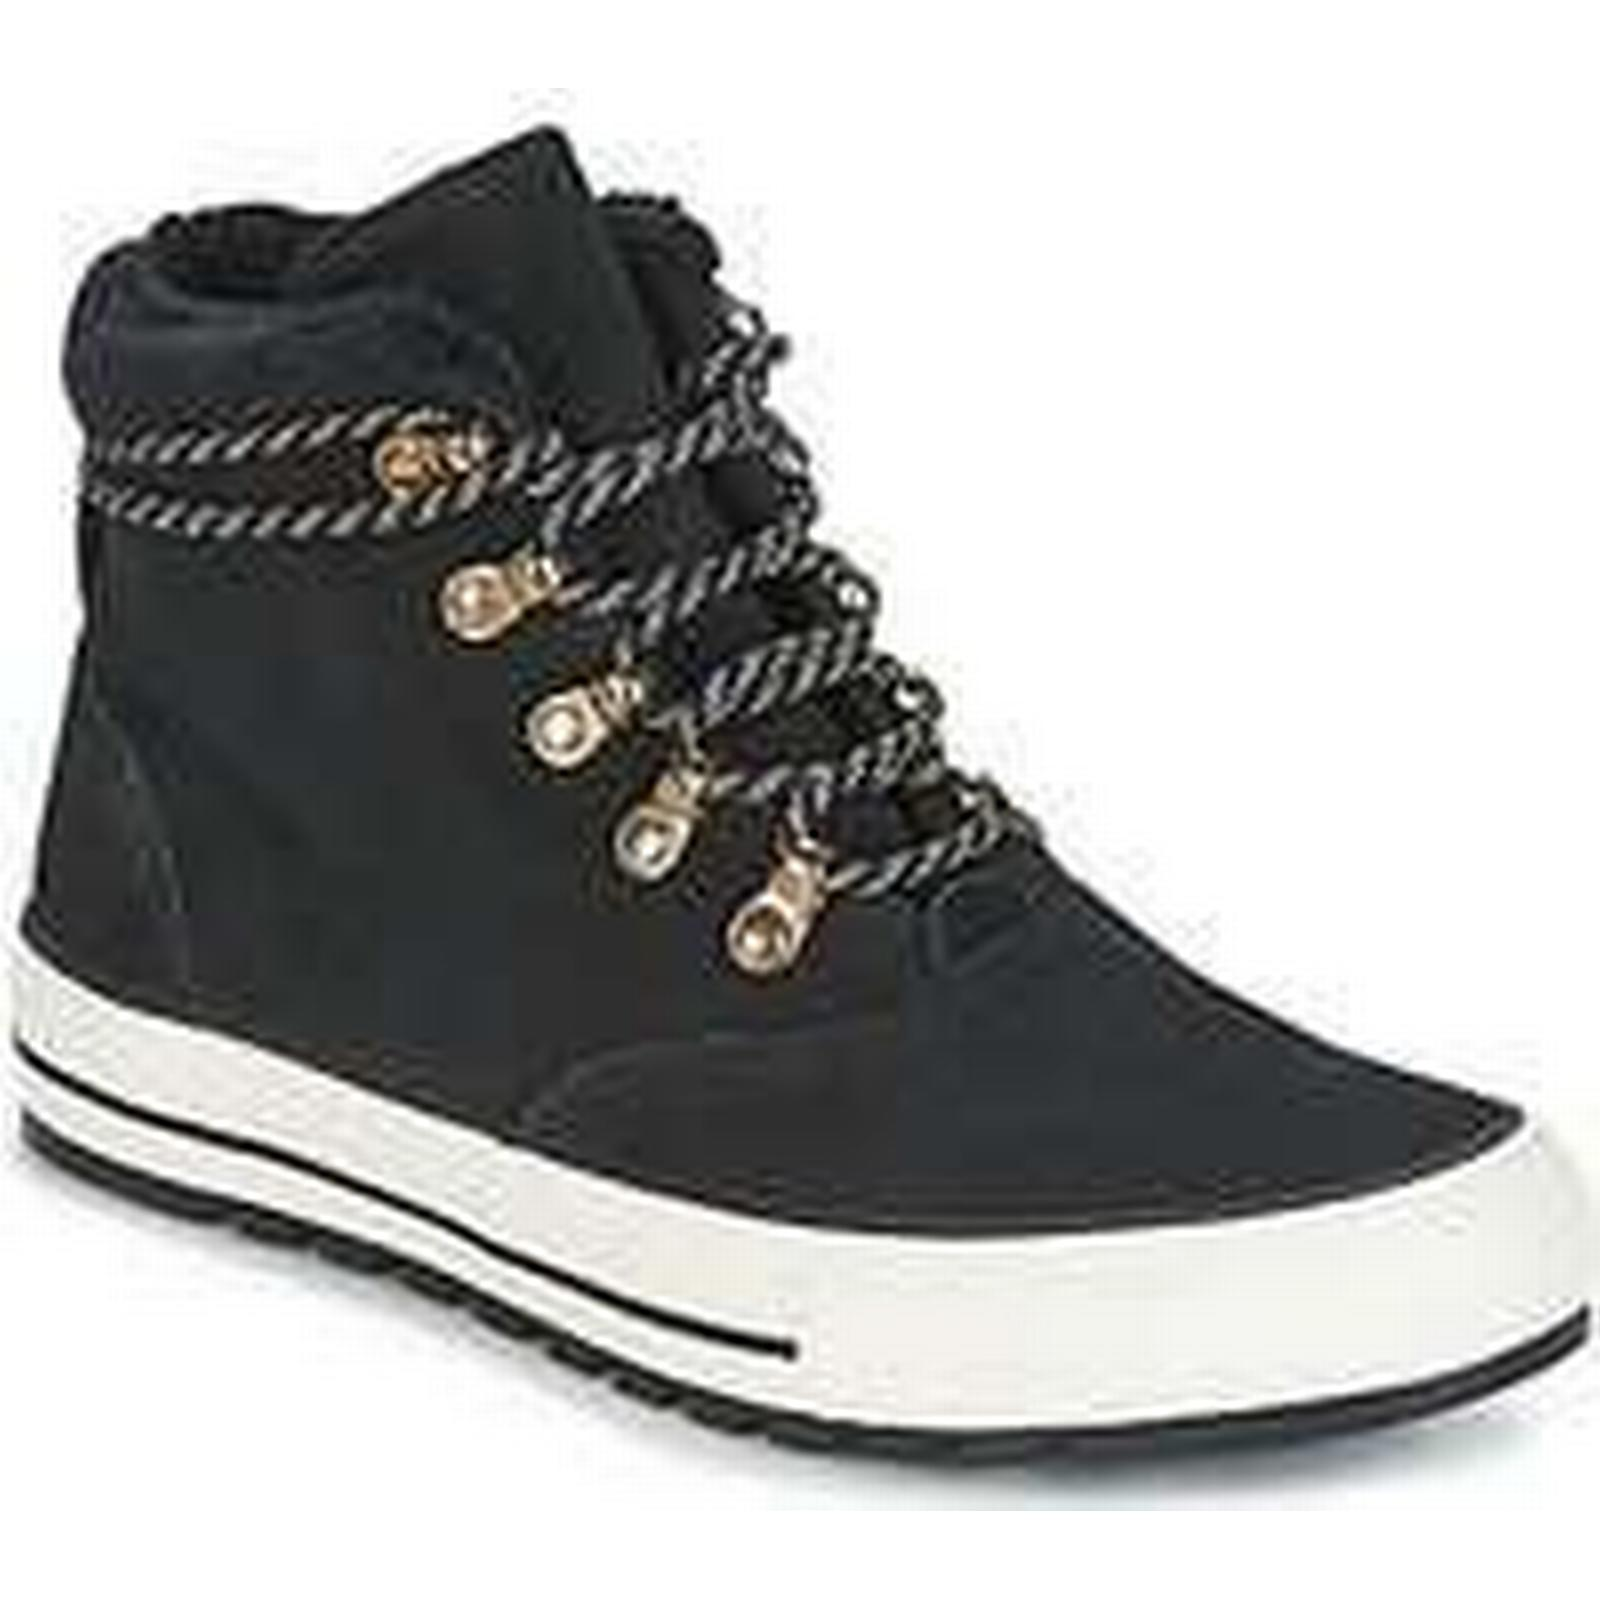 Taylor Chuck Converse uk co Spartoo All Star XawqpWIgx